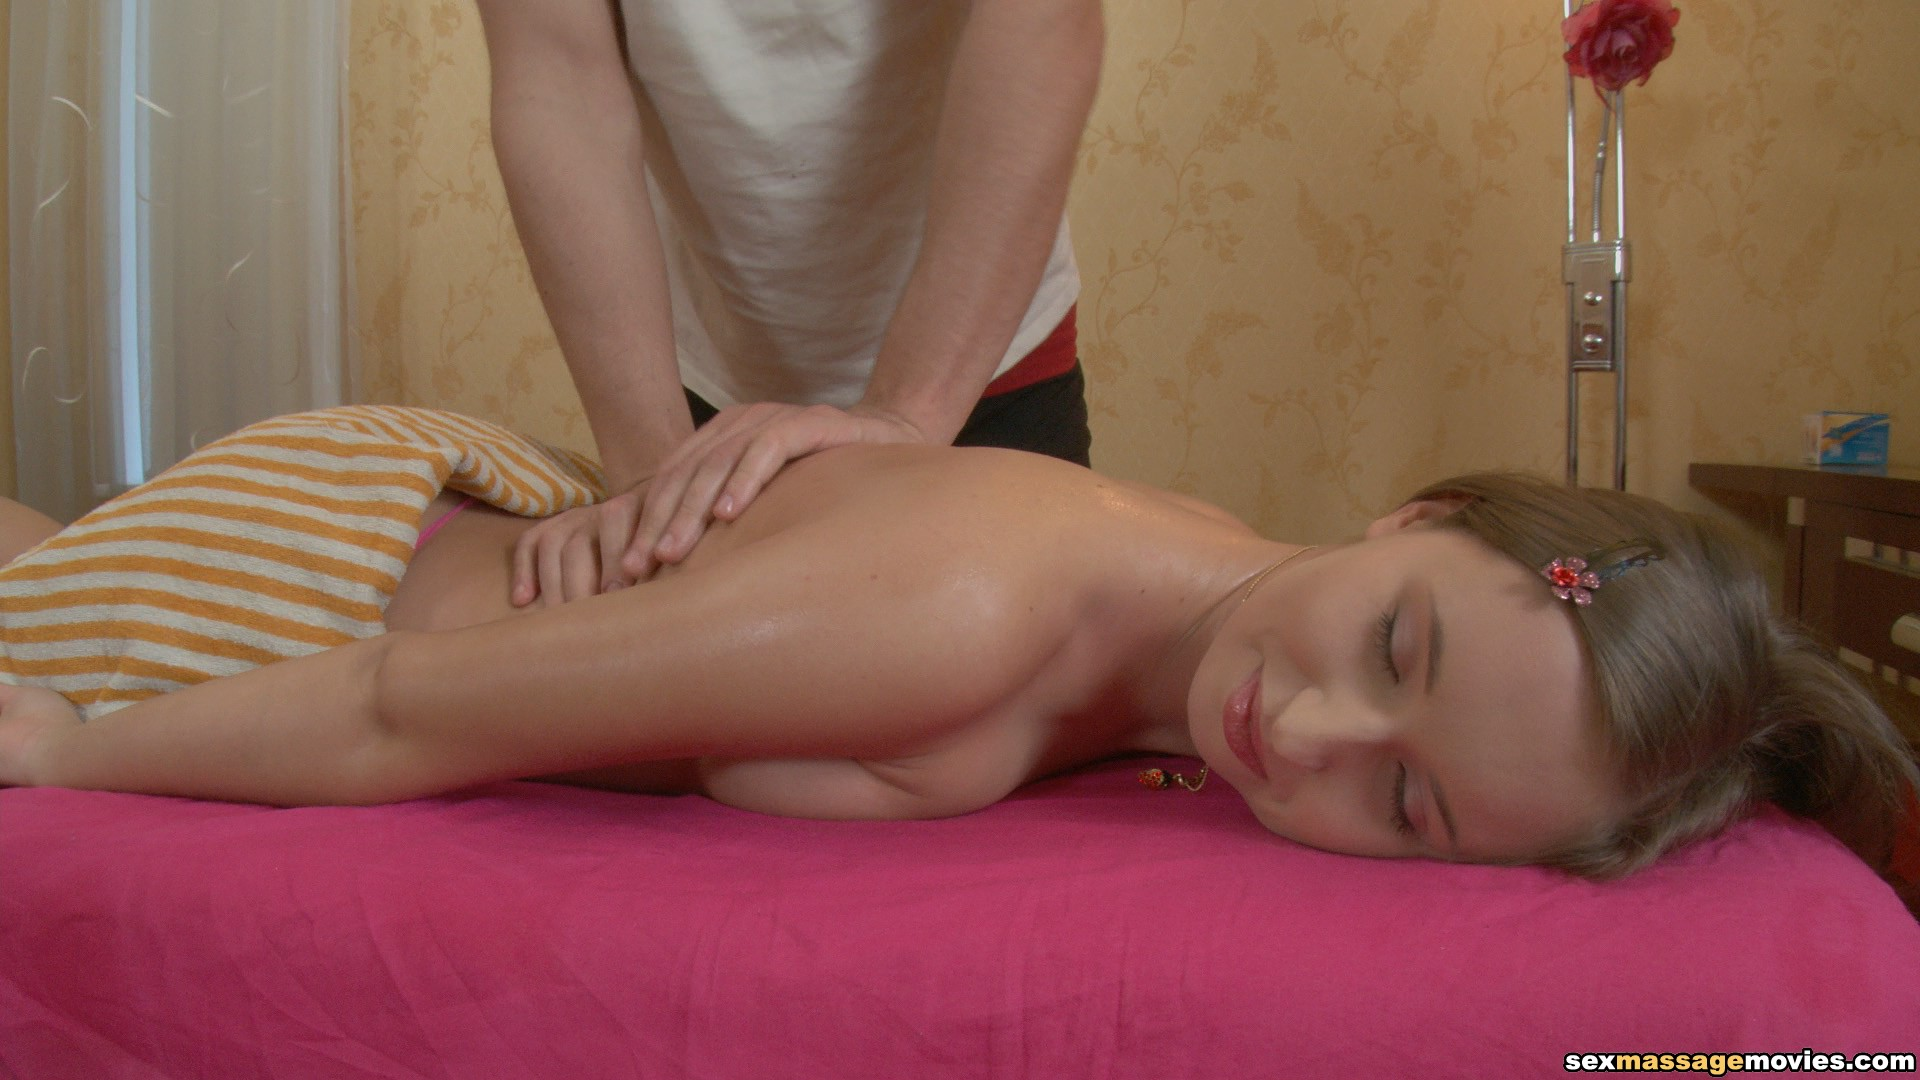 erotische massage vagina porno sex films